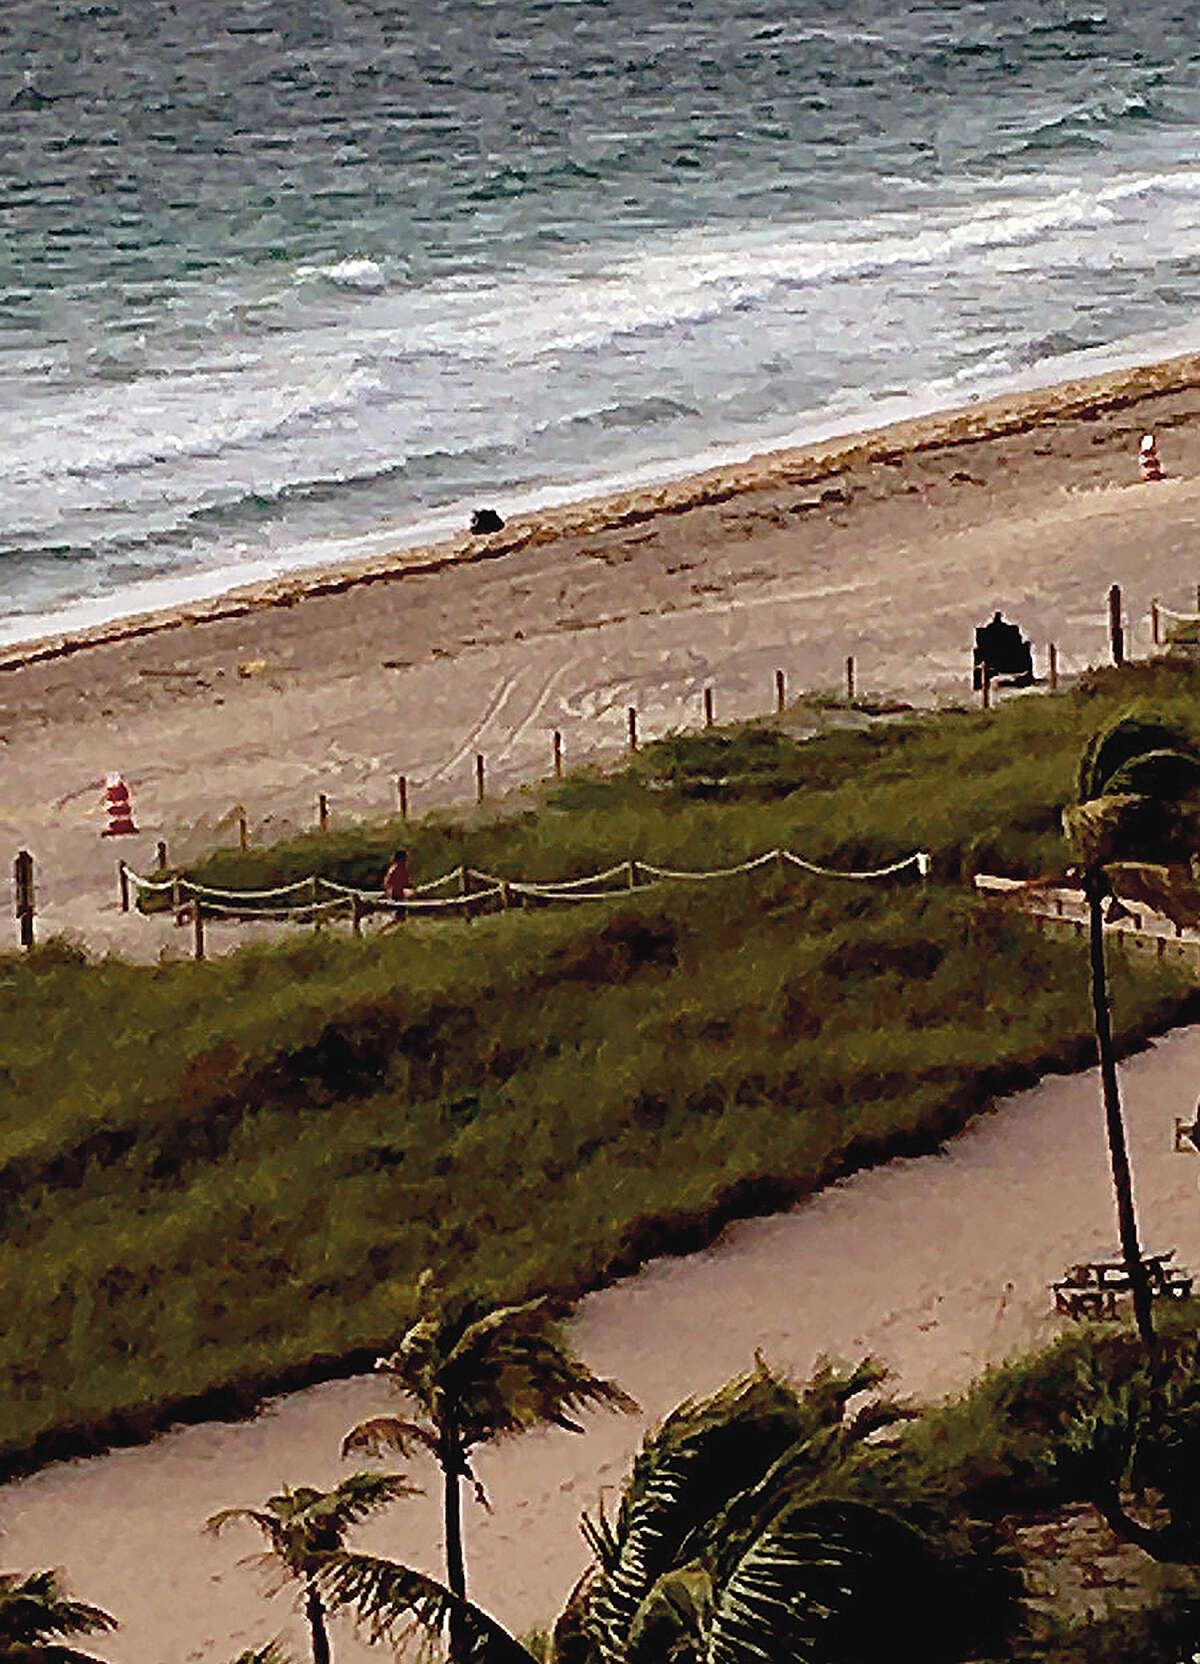 A naval mine washed up on the beach Sunday in Lauderdale-By-The-Sea, Florida, just outside the condo where Bev and Lonnie Johns of Jacksonville are wintering.